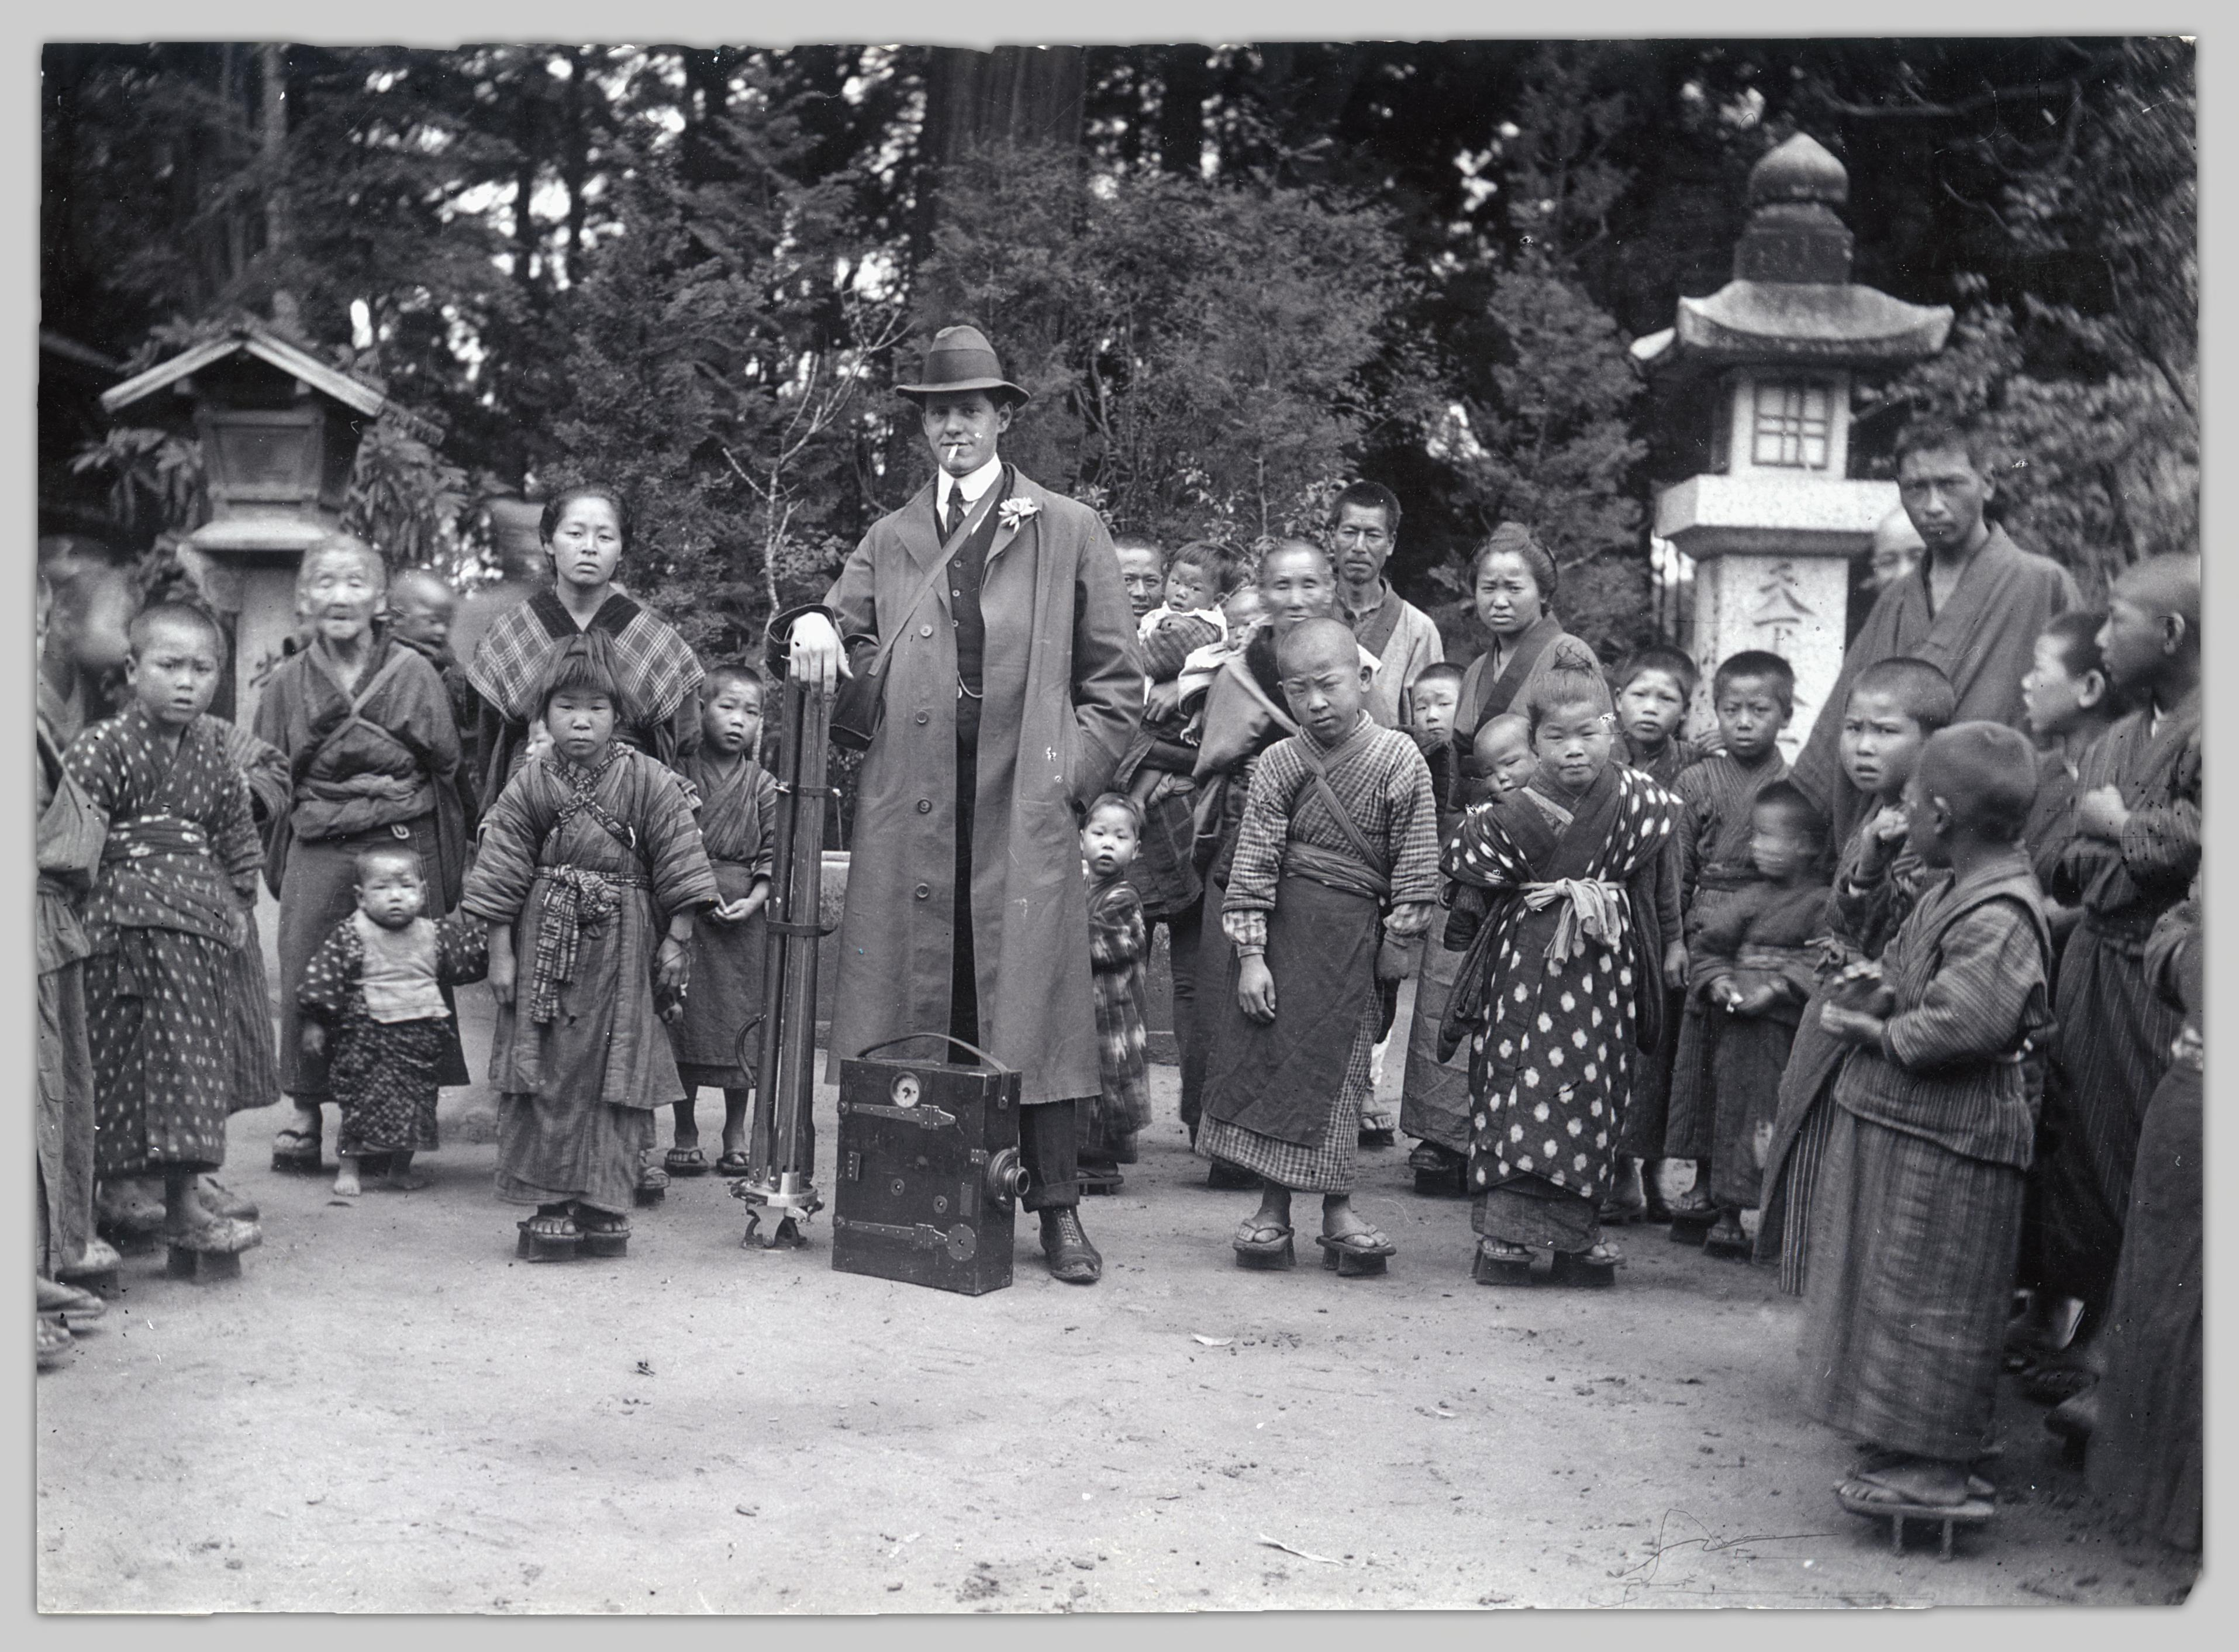 A photo of Cuthbert Robinson (John Cooper Robinson's son) posing with a large format camera, surrounded by Japanese children and guardian of various ages.